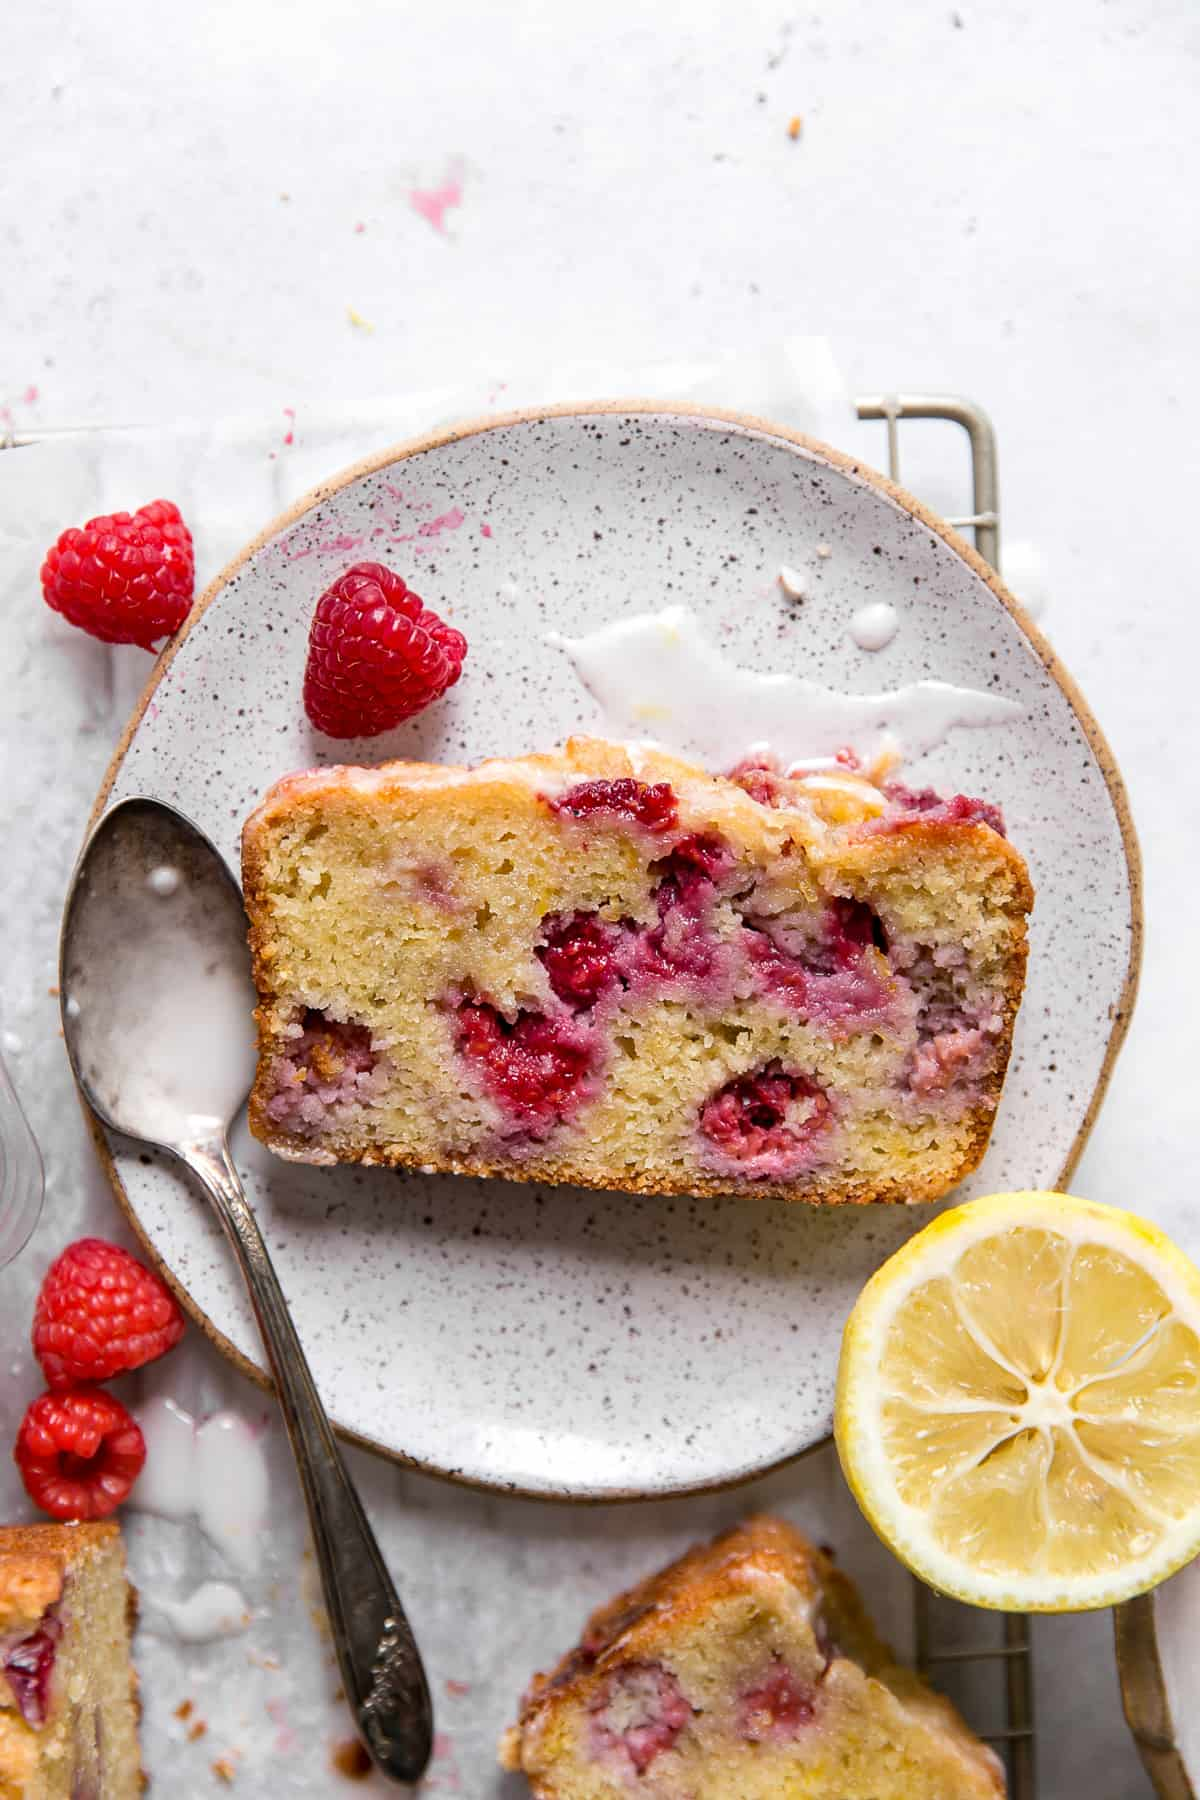 raspberry lemon loaf on plate next to spoon with glaze and lemon round